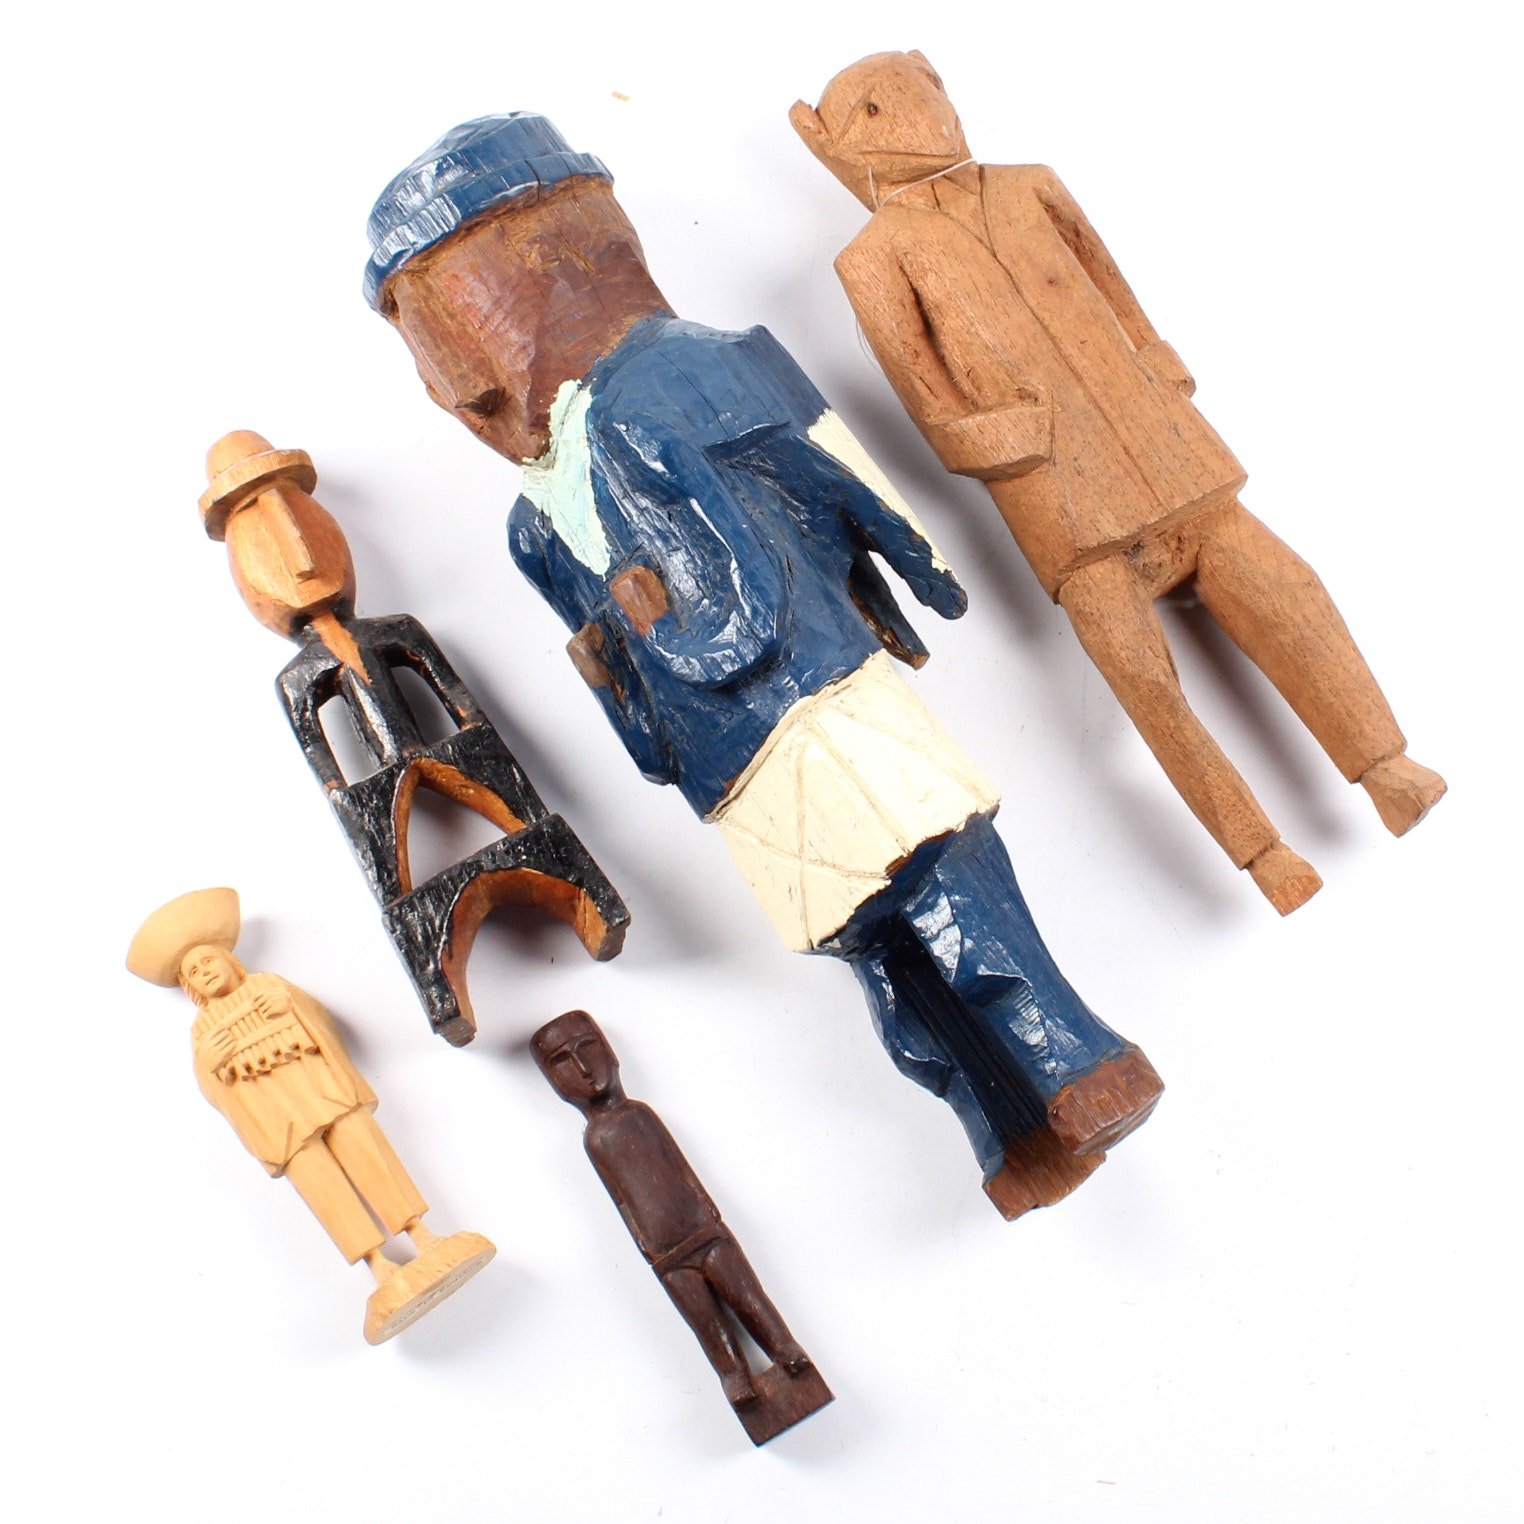 South American Carved Wooden Figures